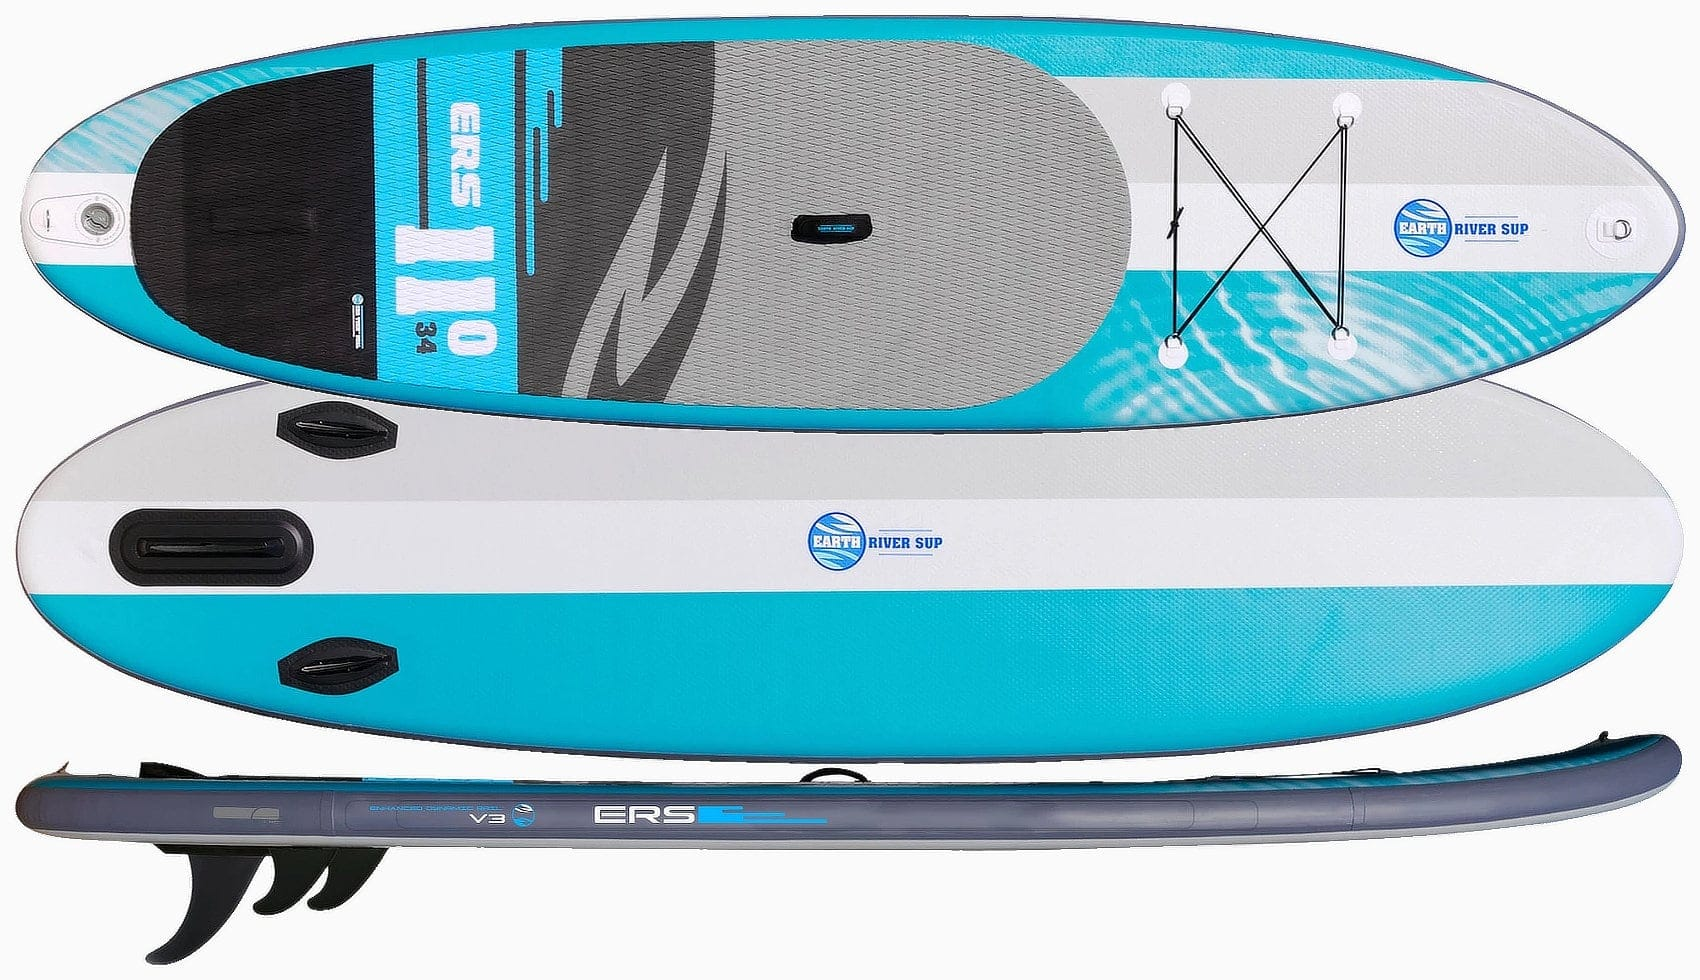 Earth River SUP 11-0 V3 Board